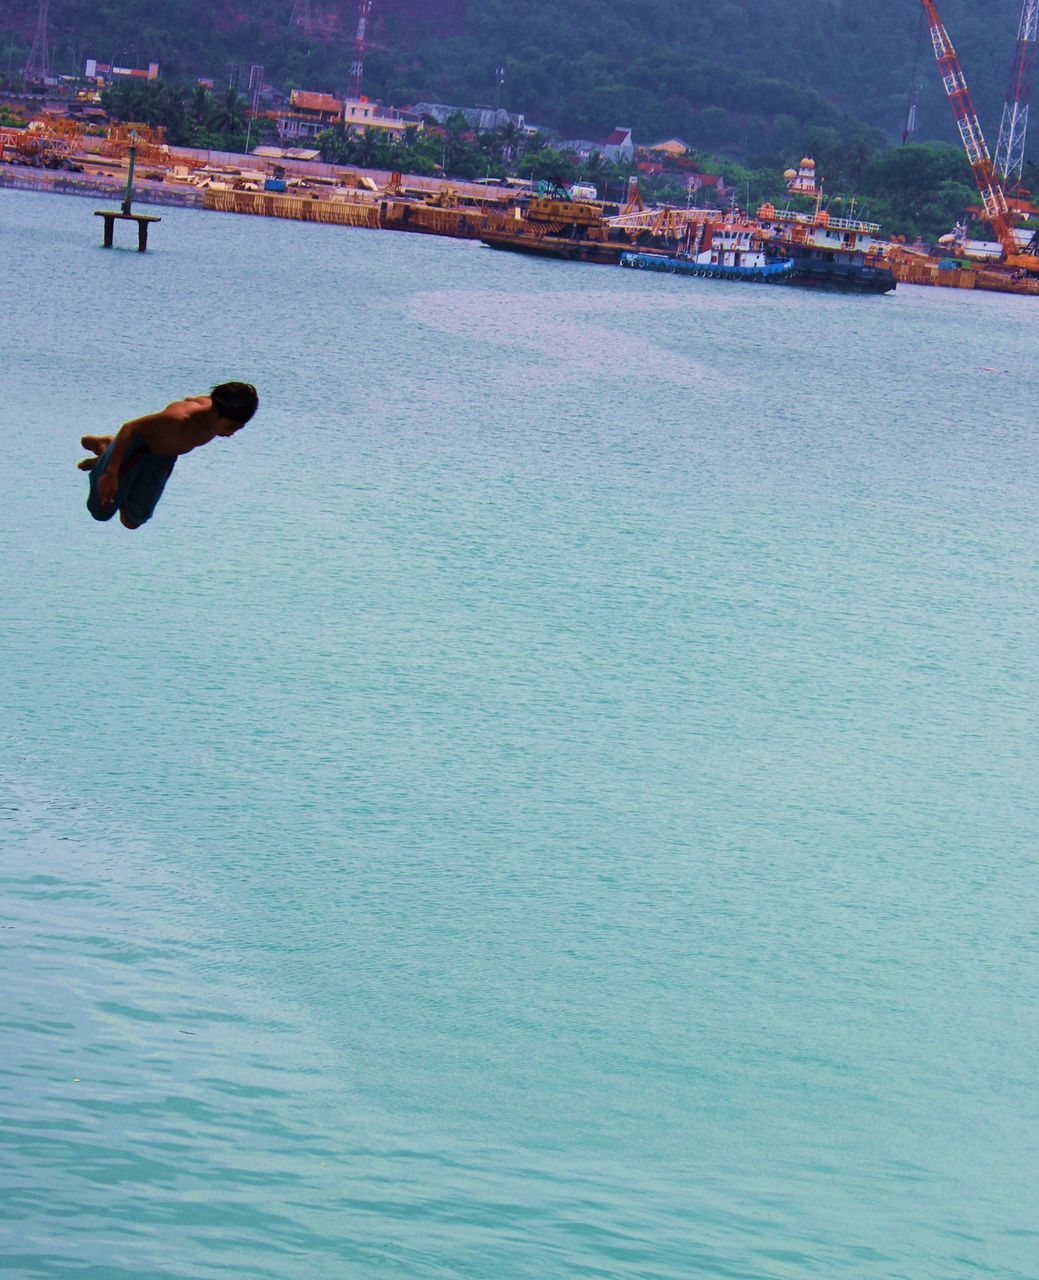 water, real people, day, waterfront, outdoors, sea, lifestyles, fun, leisure activity, one person, nature, men, mid-air, beauty in nature, people